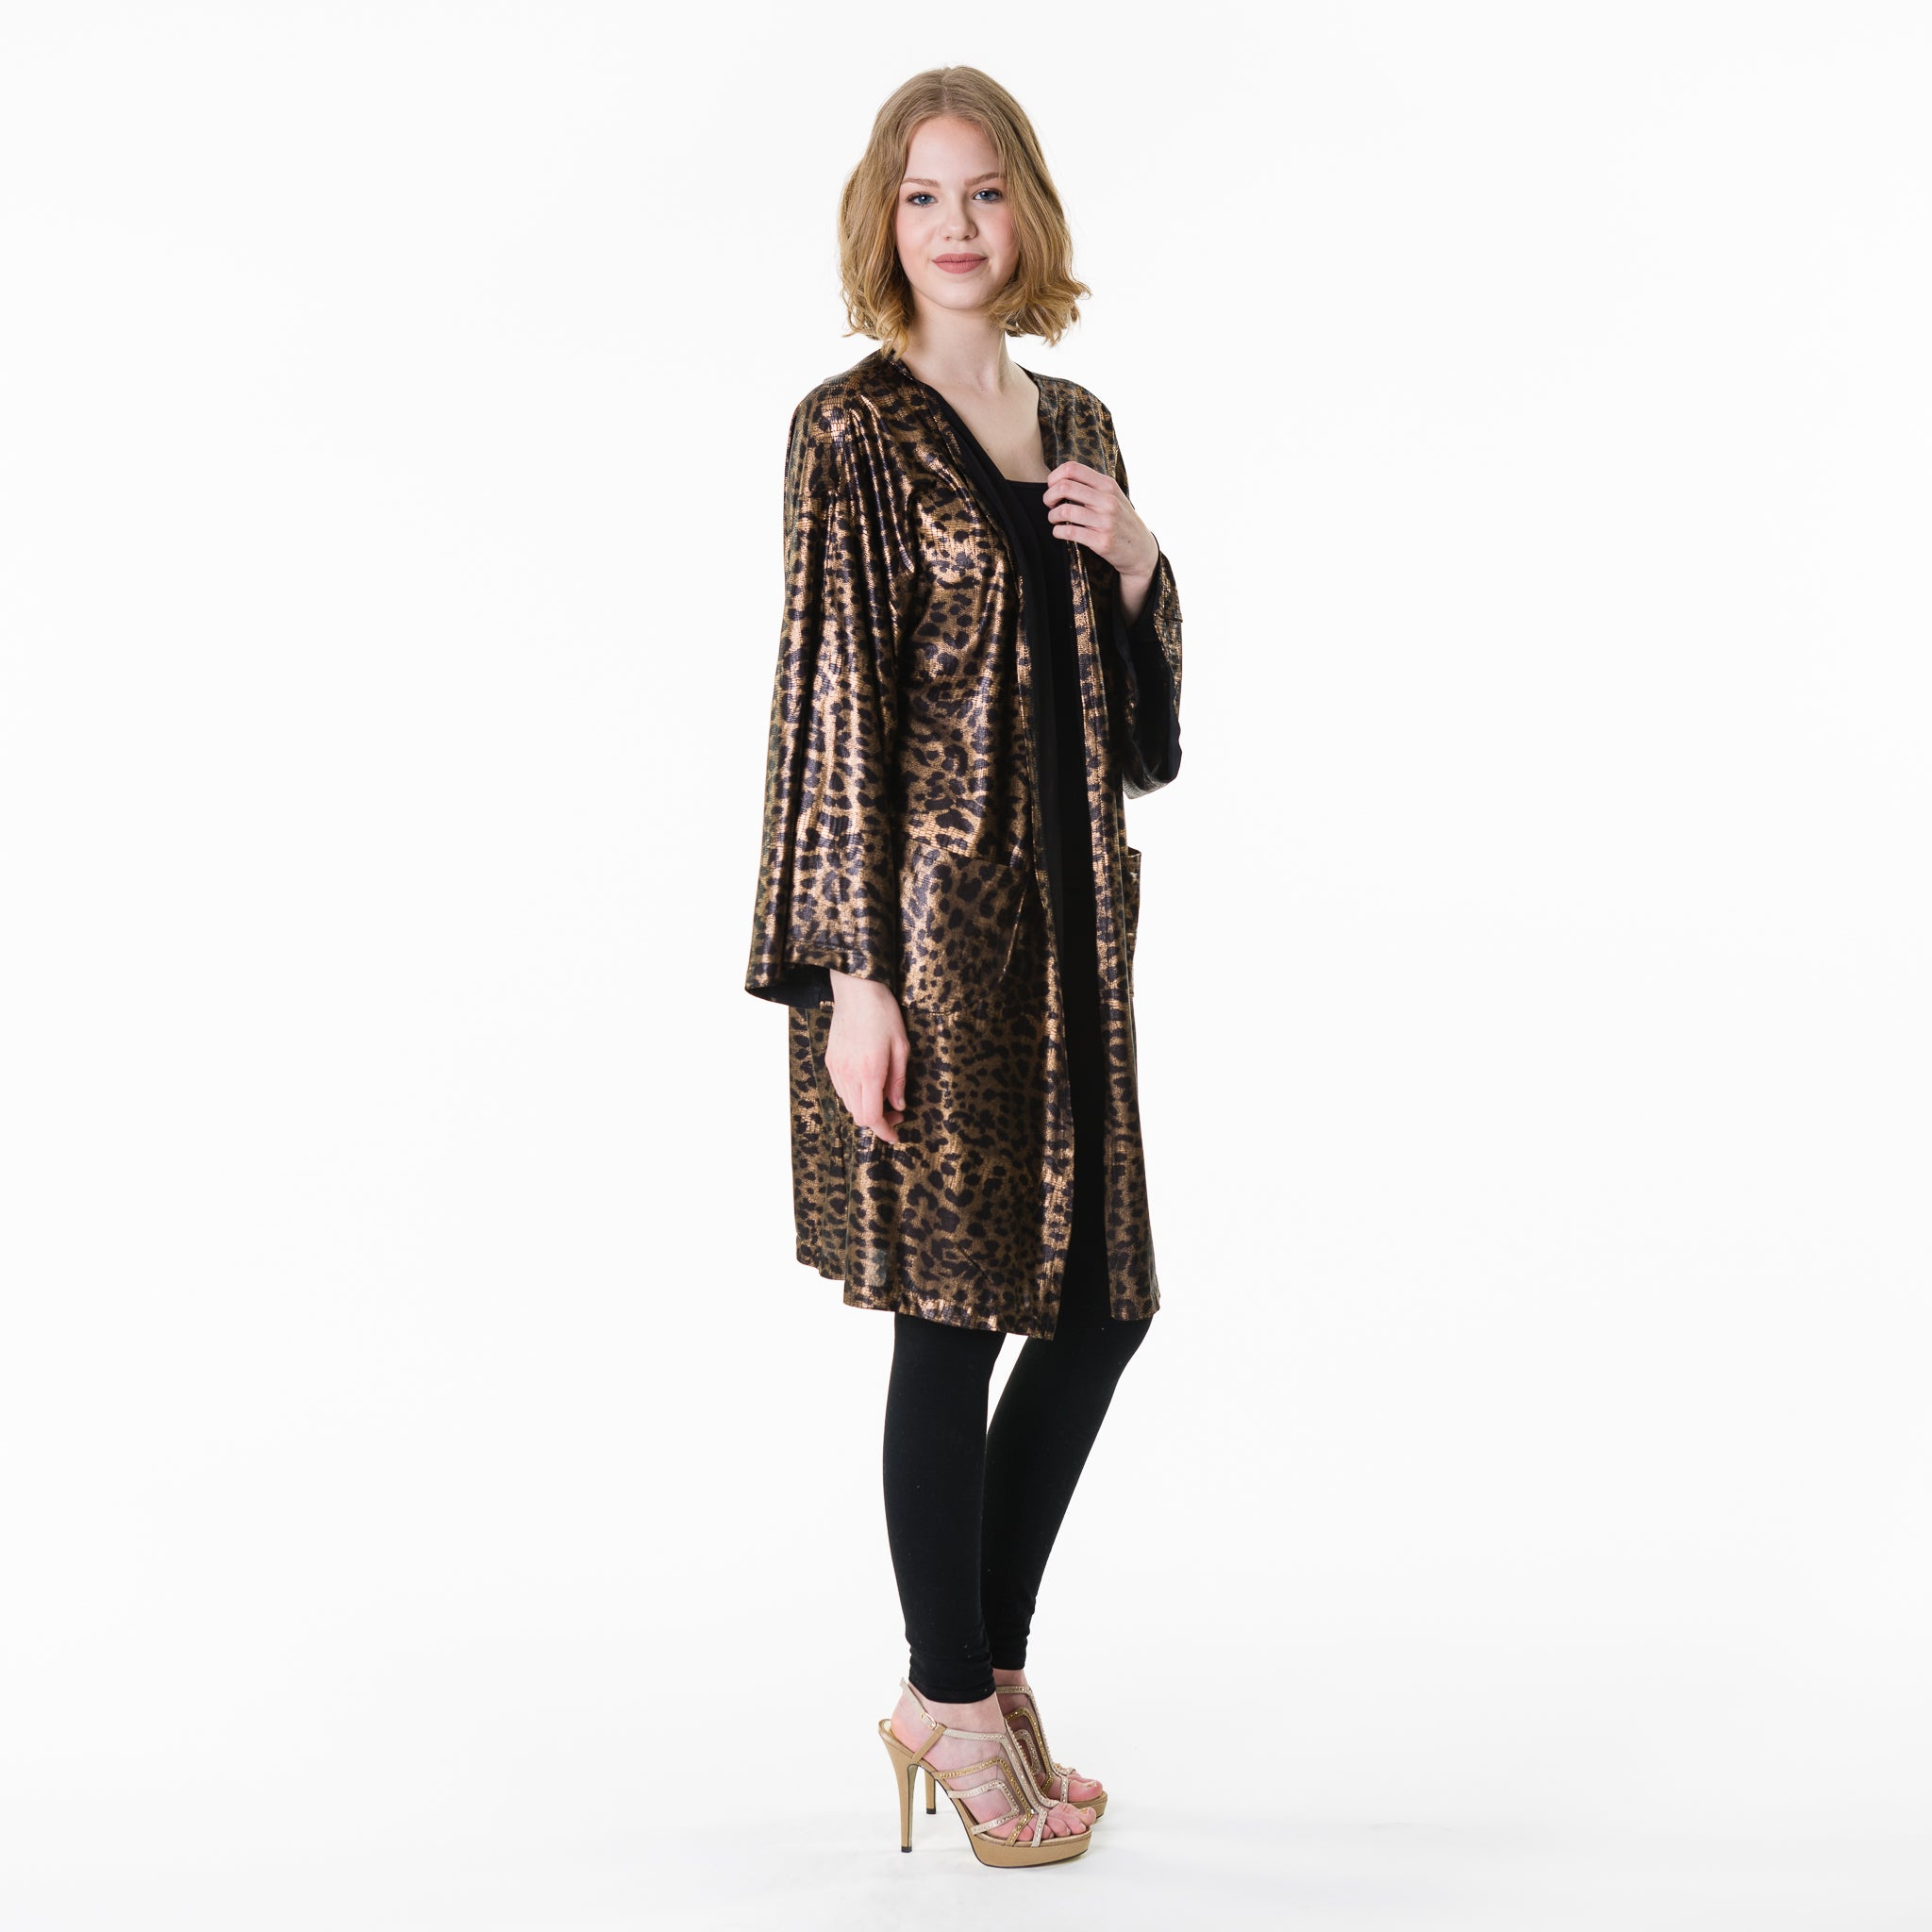 Polyester-nylon gold and black leopard print open wrap, with pockets. Shiny, flowing, breezy, and slightly sheer wrap.